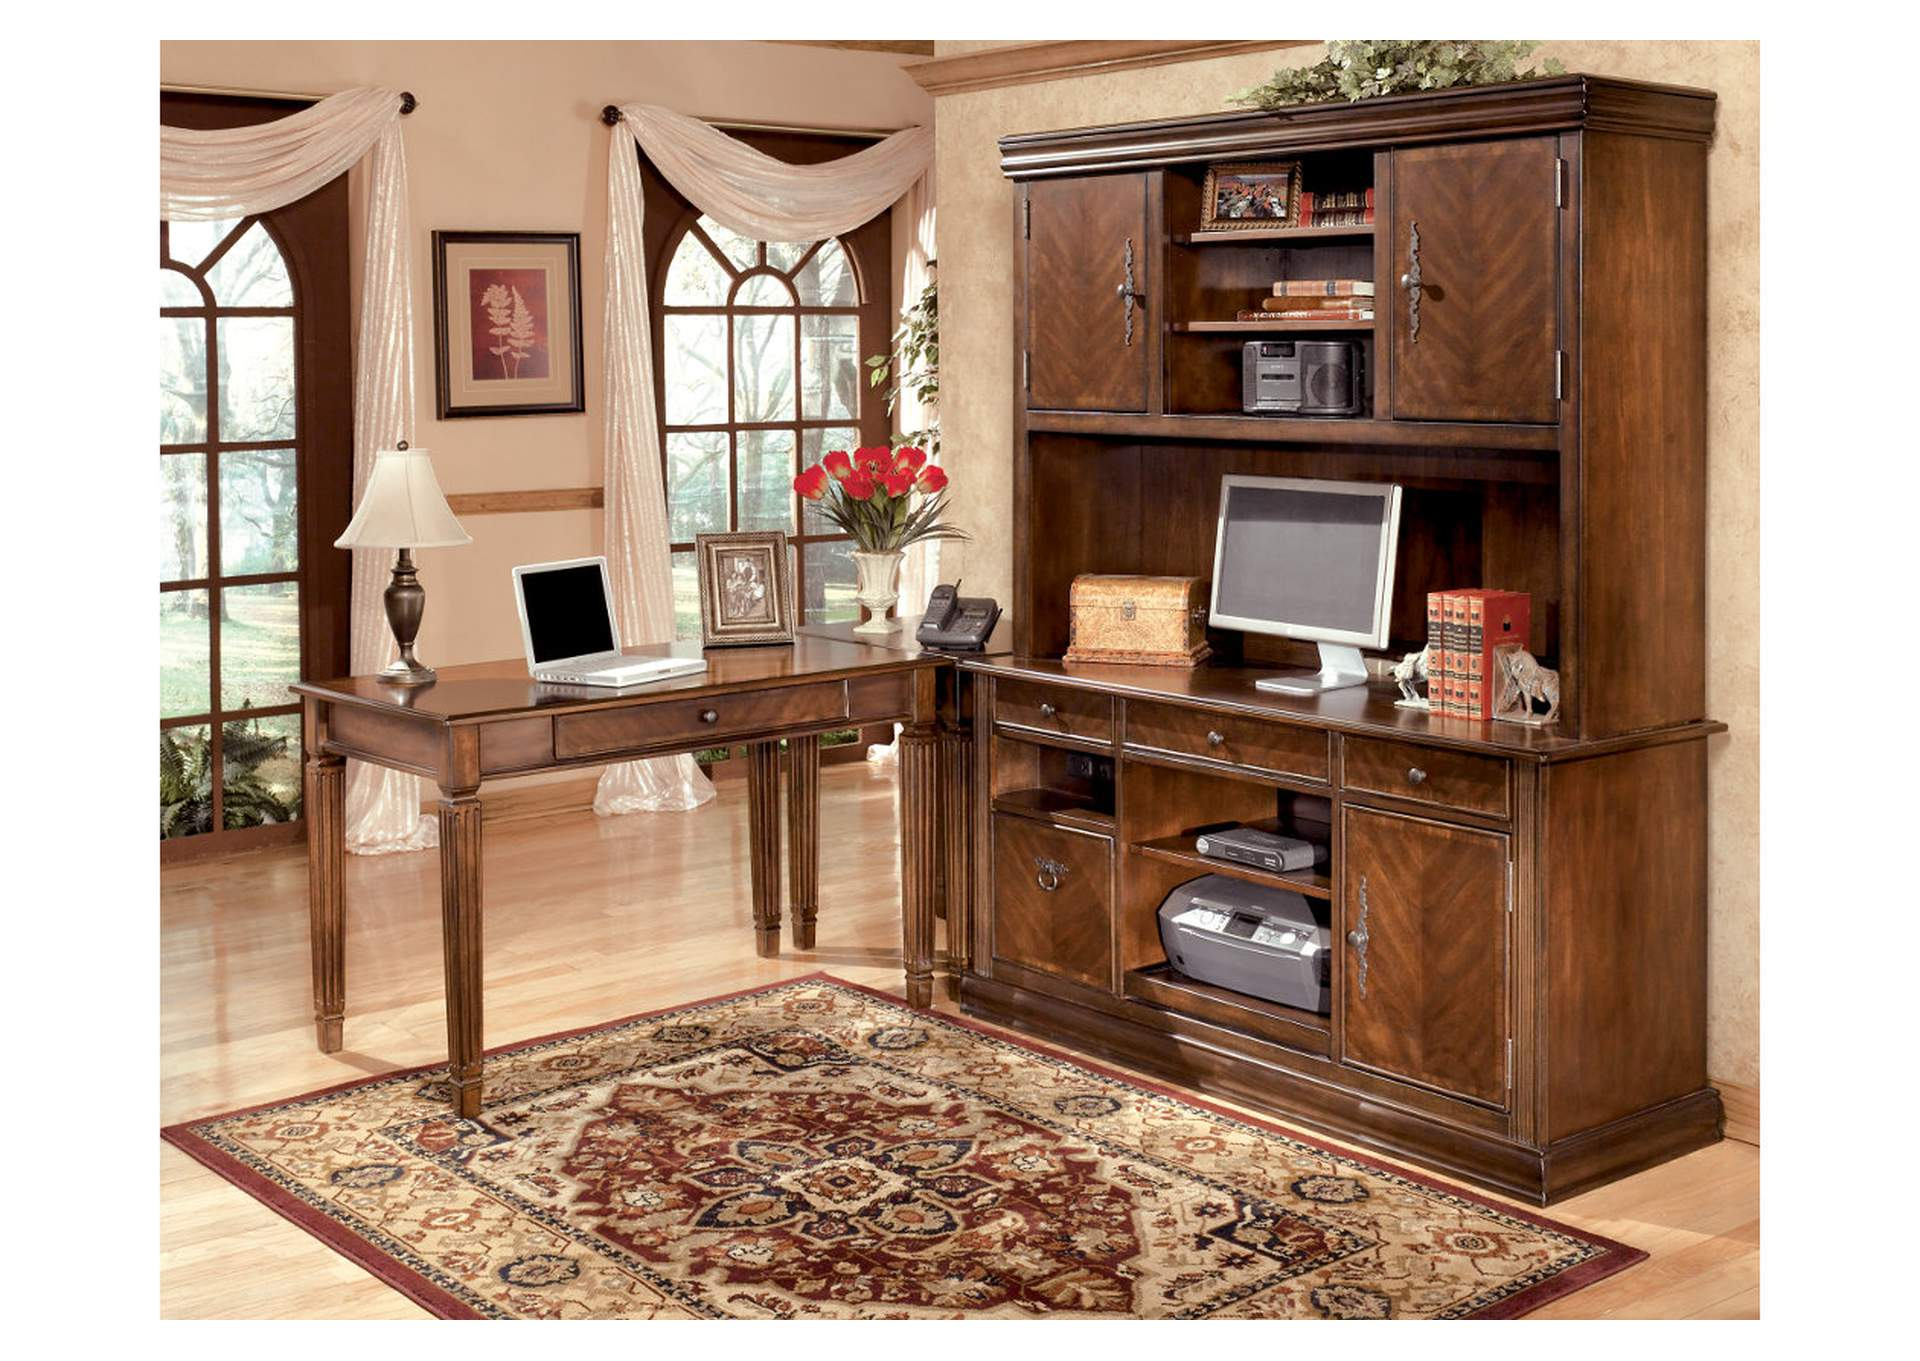 Hamlyn L-Shaped Desk w/ Large Hutch & Credenza,ABF Signature Design by Ashley